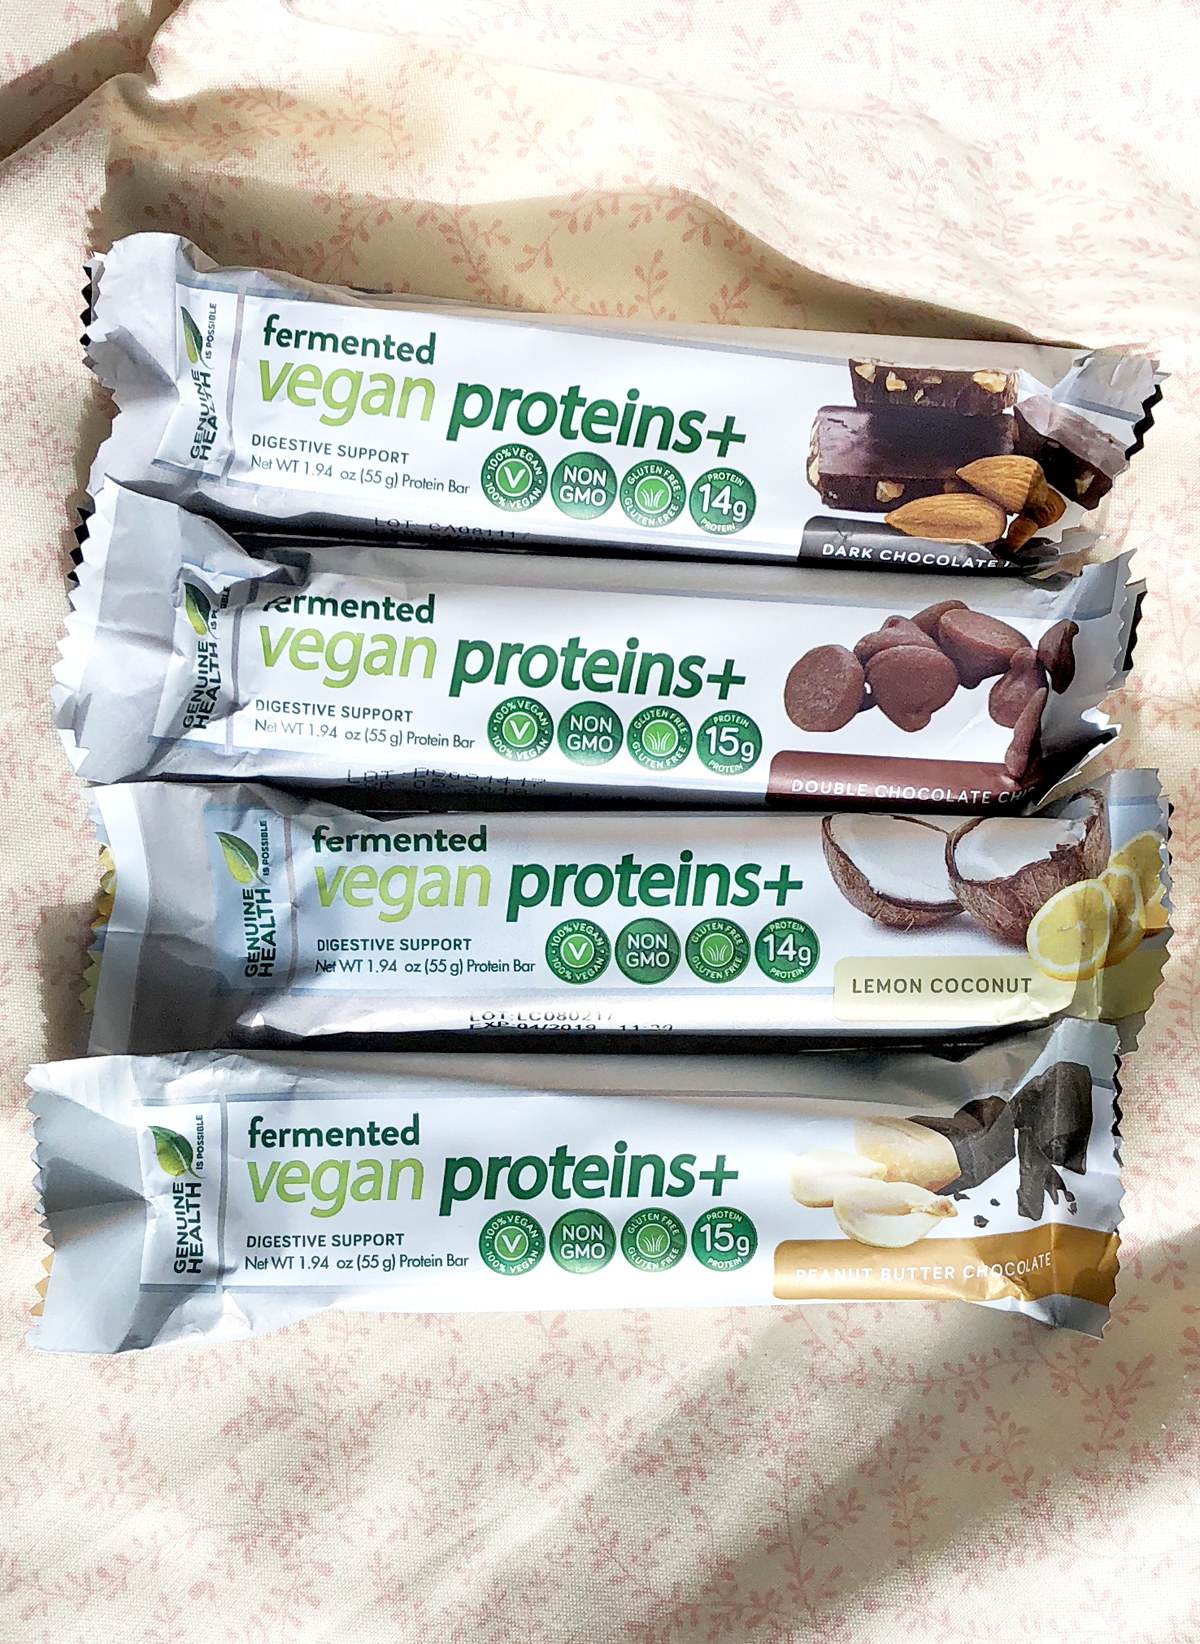 Great for gut health and immune support, these bars offer the most complete absorption of protein and nutrients available.